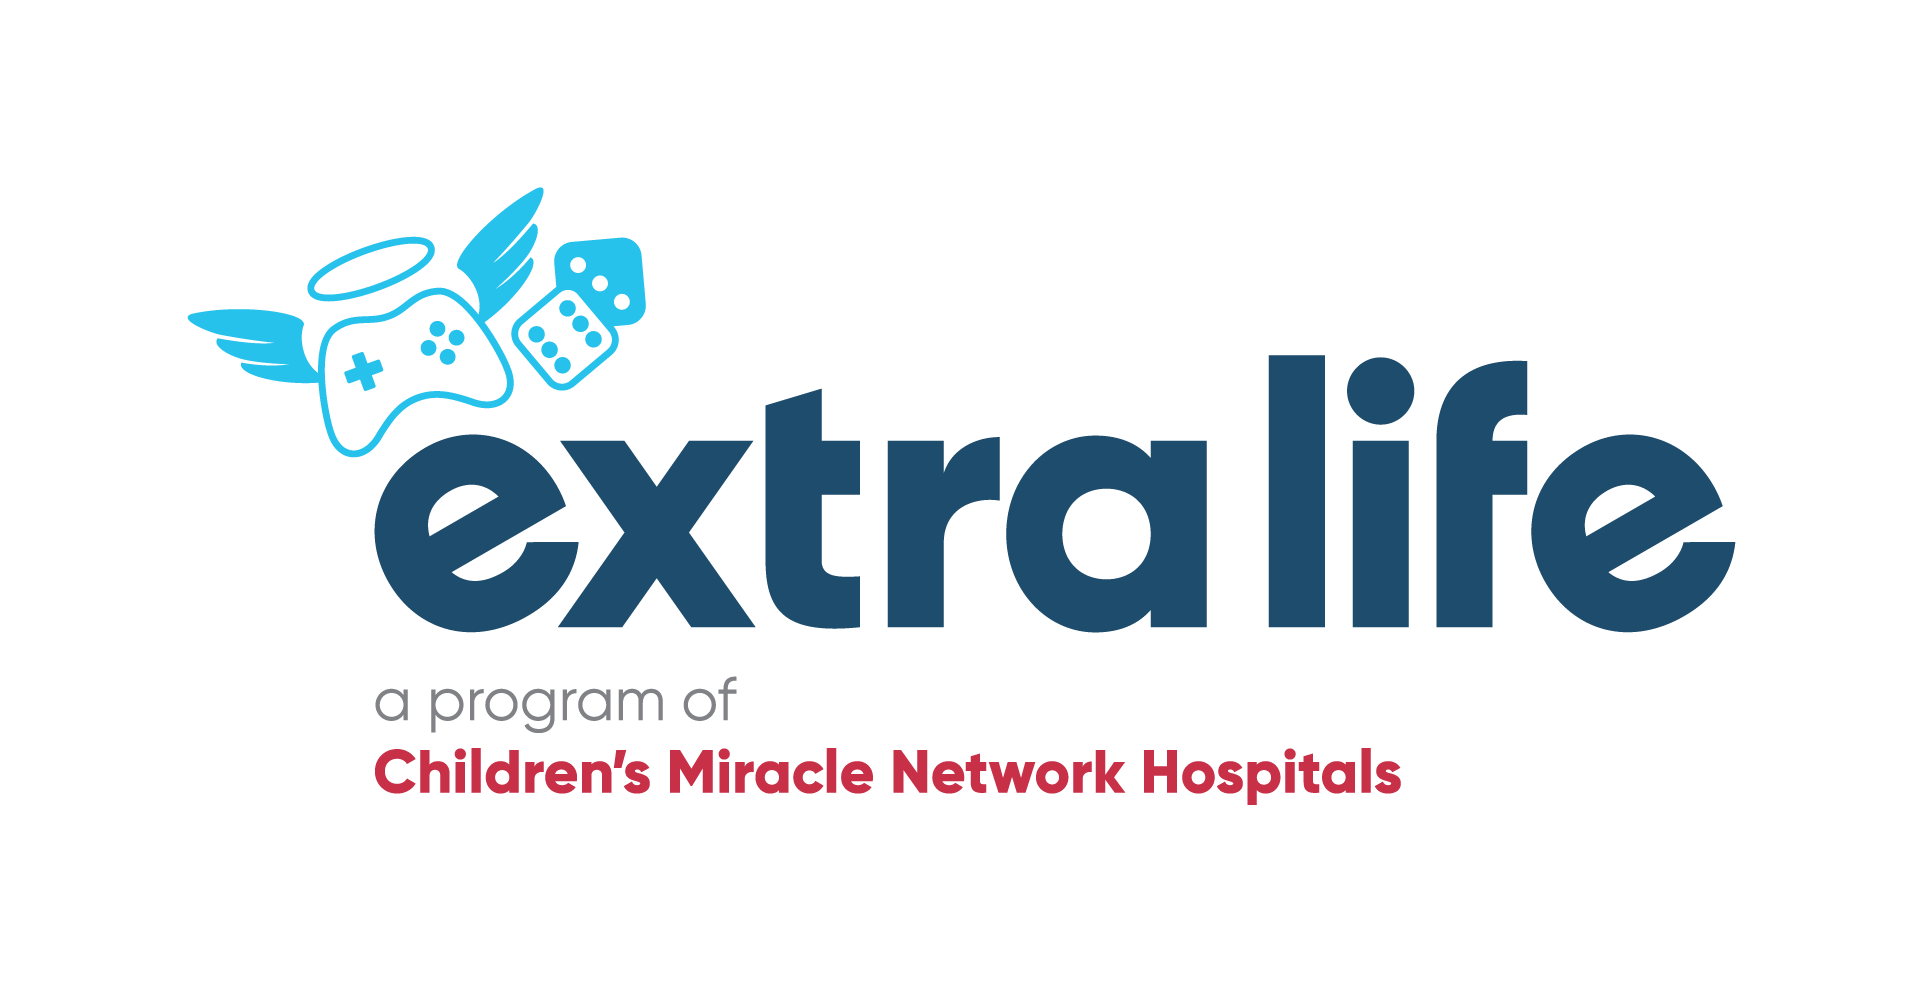 Extra Life: A Program of Children's Miracle Network Hospitals